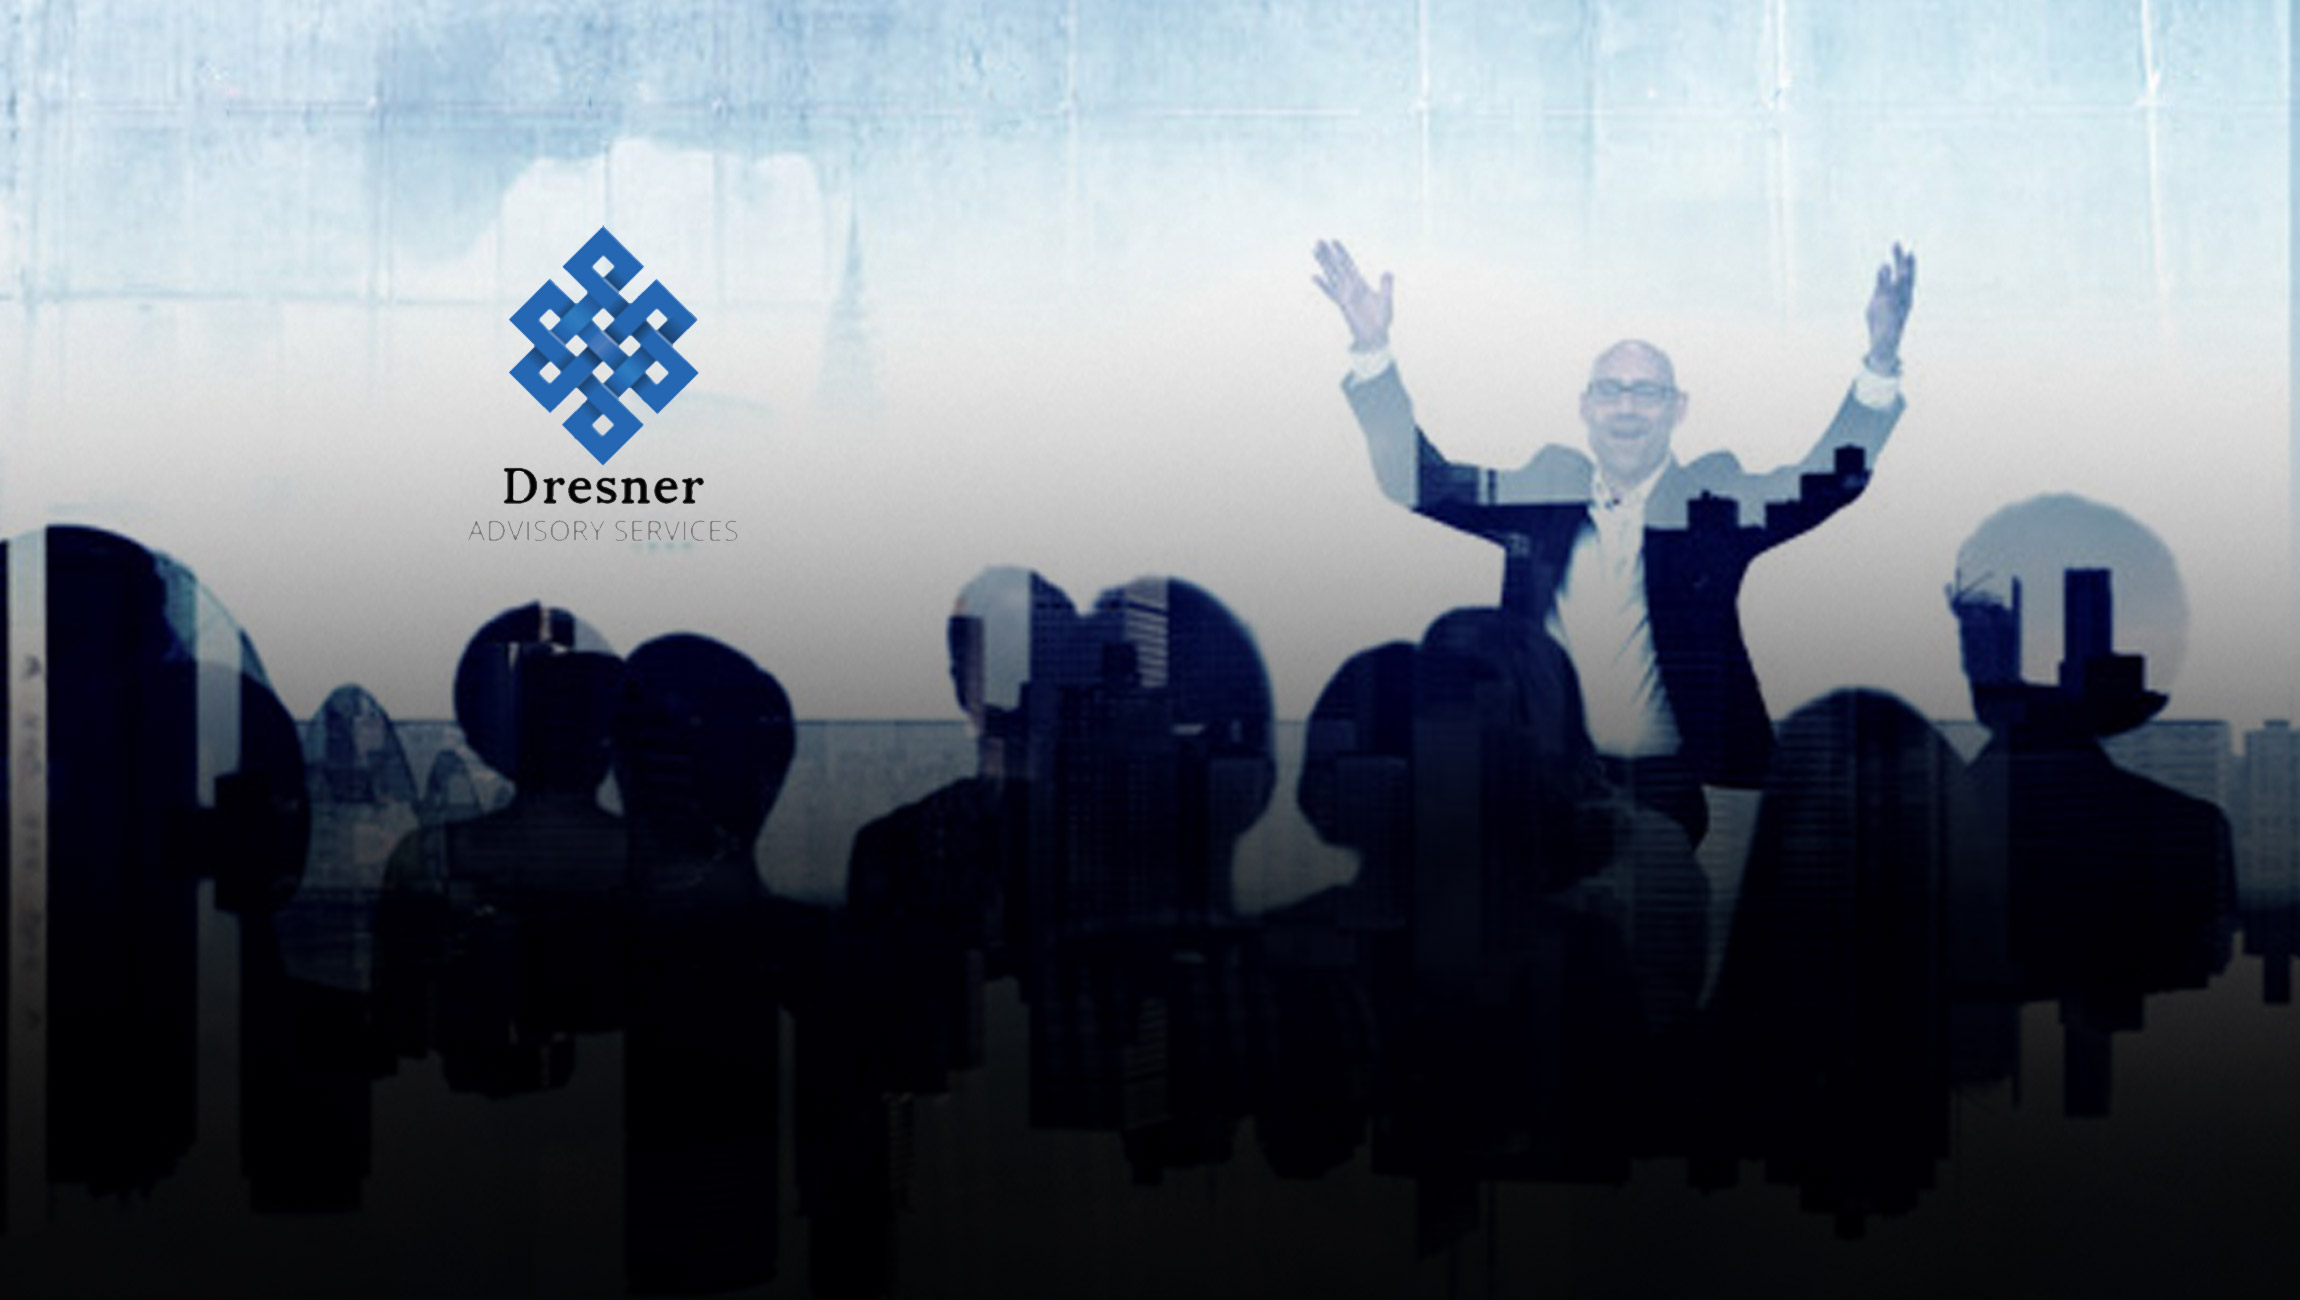 Dresner Advisory Services Publishes 2021 Cloud Computing and Business Intelligence Market Study